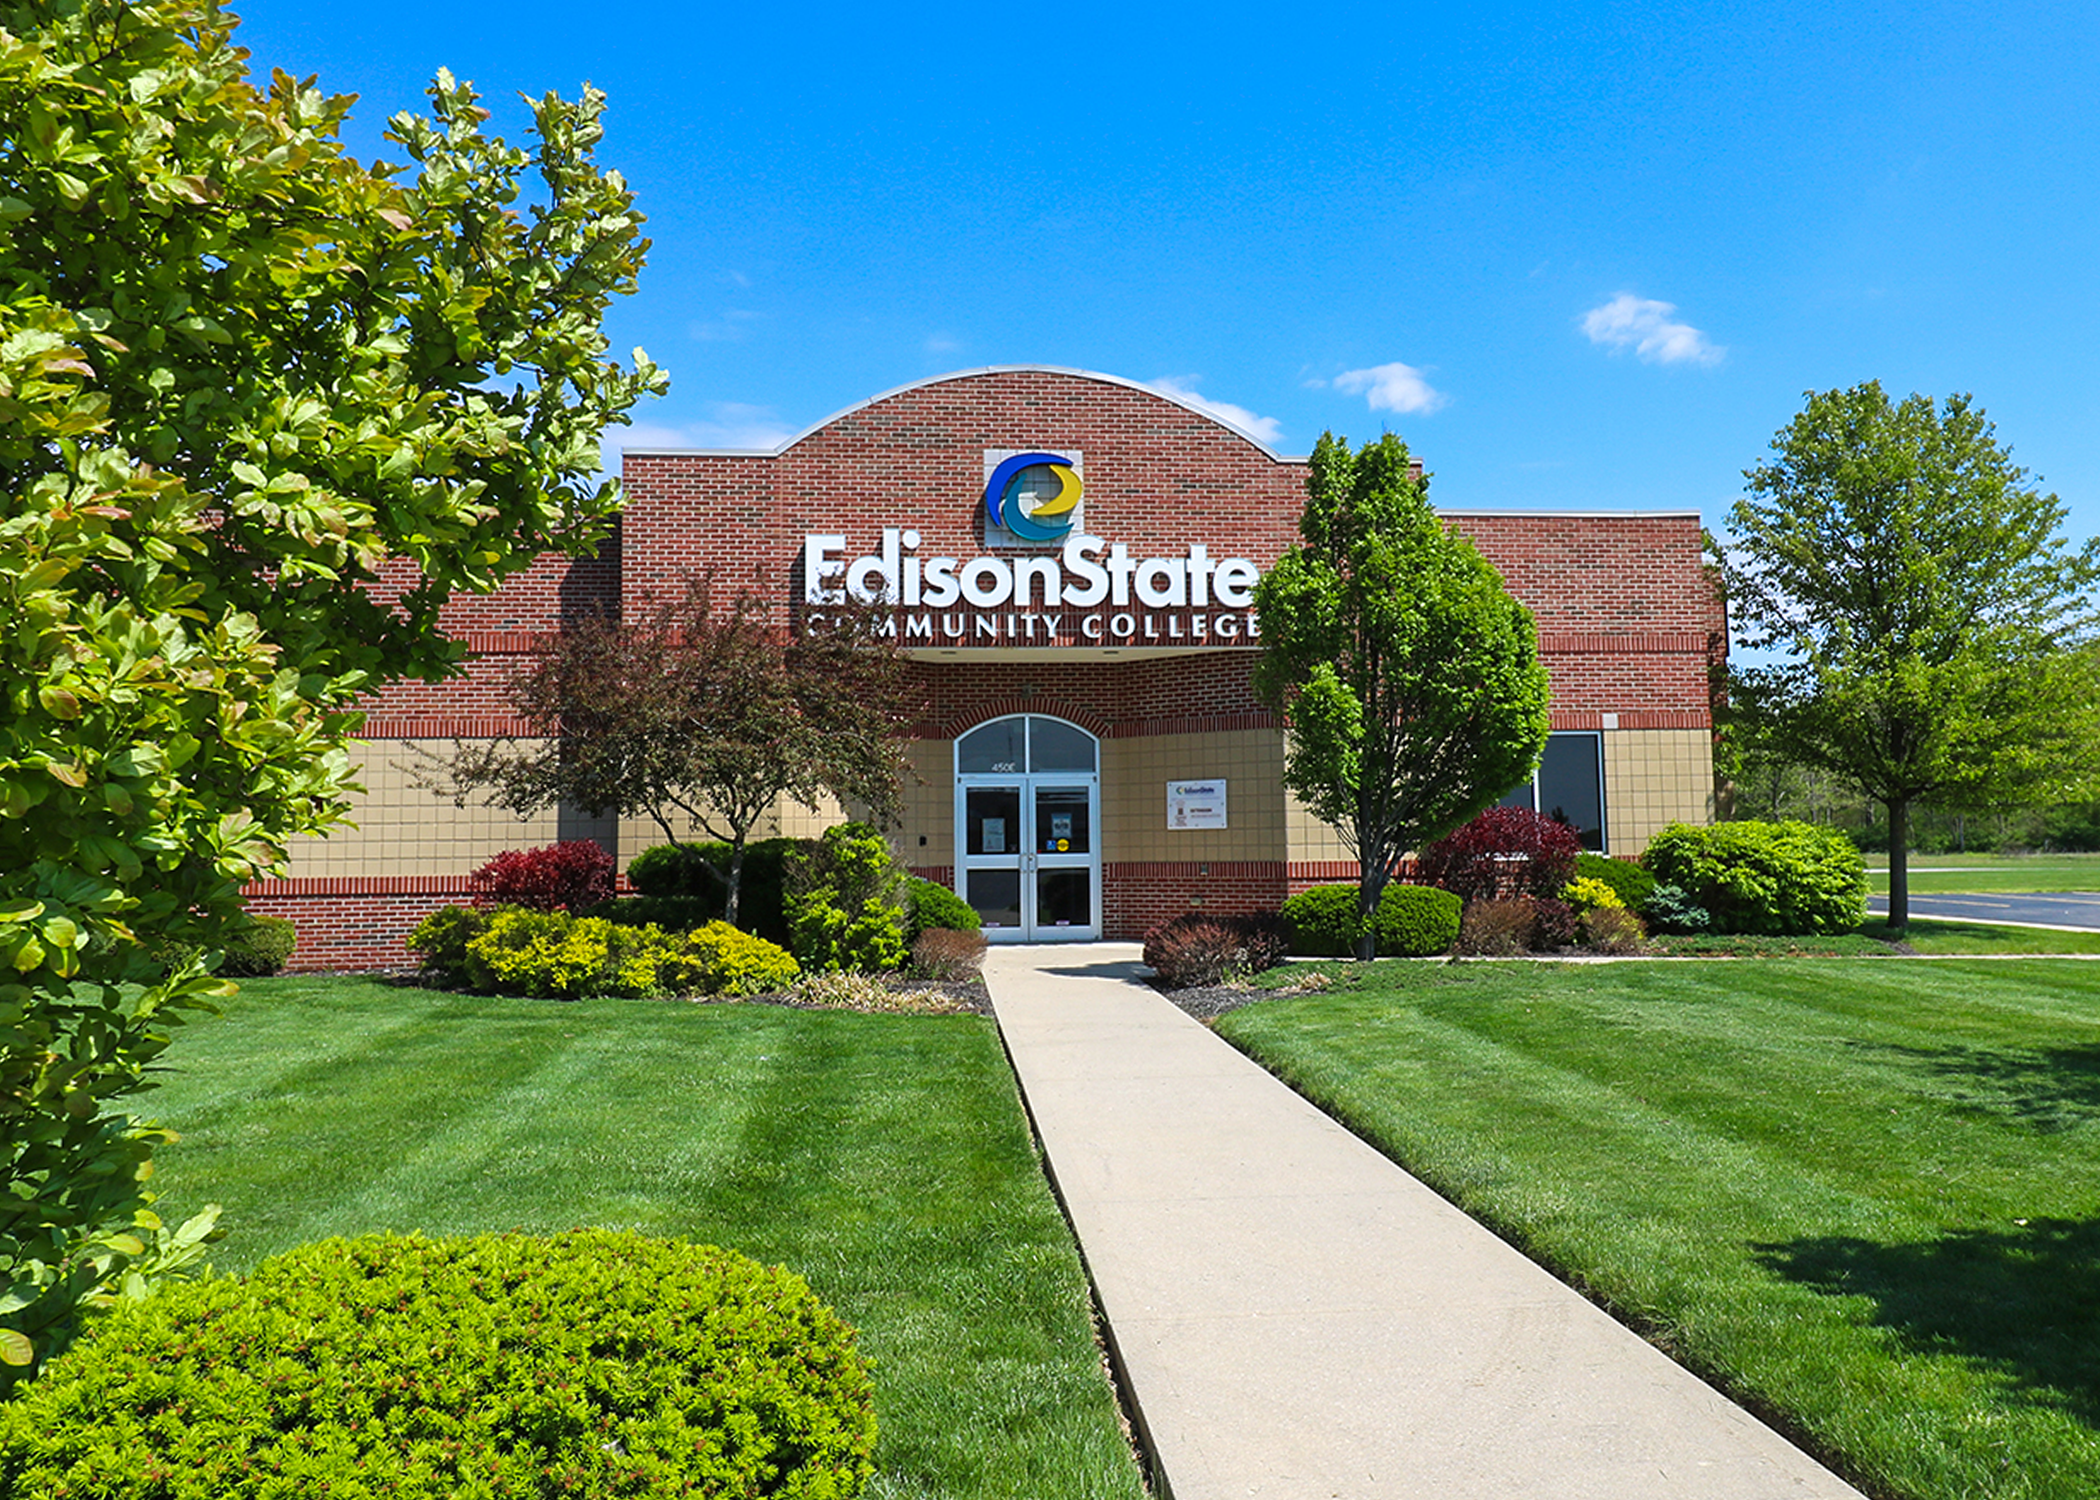 Edison State Campus at Greenville